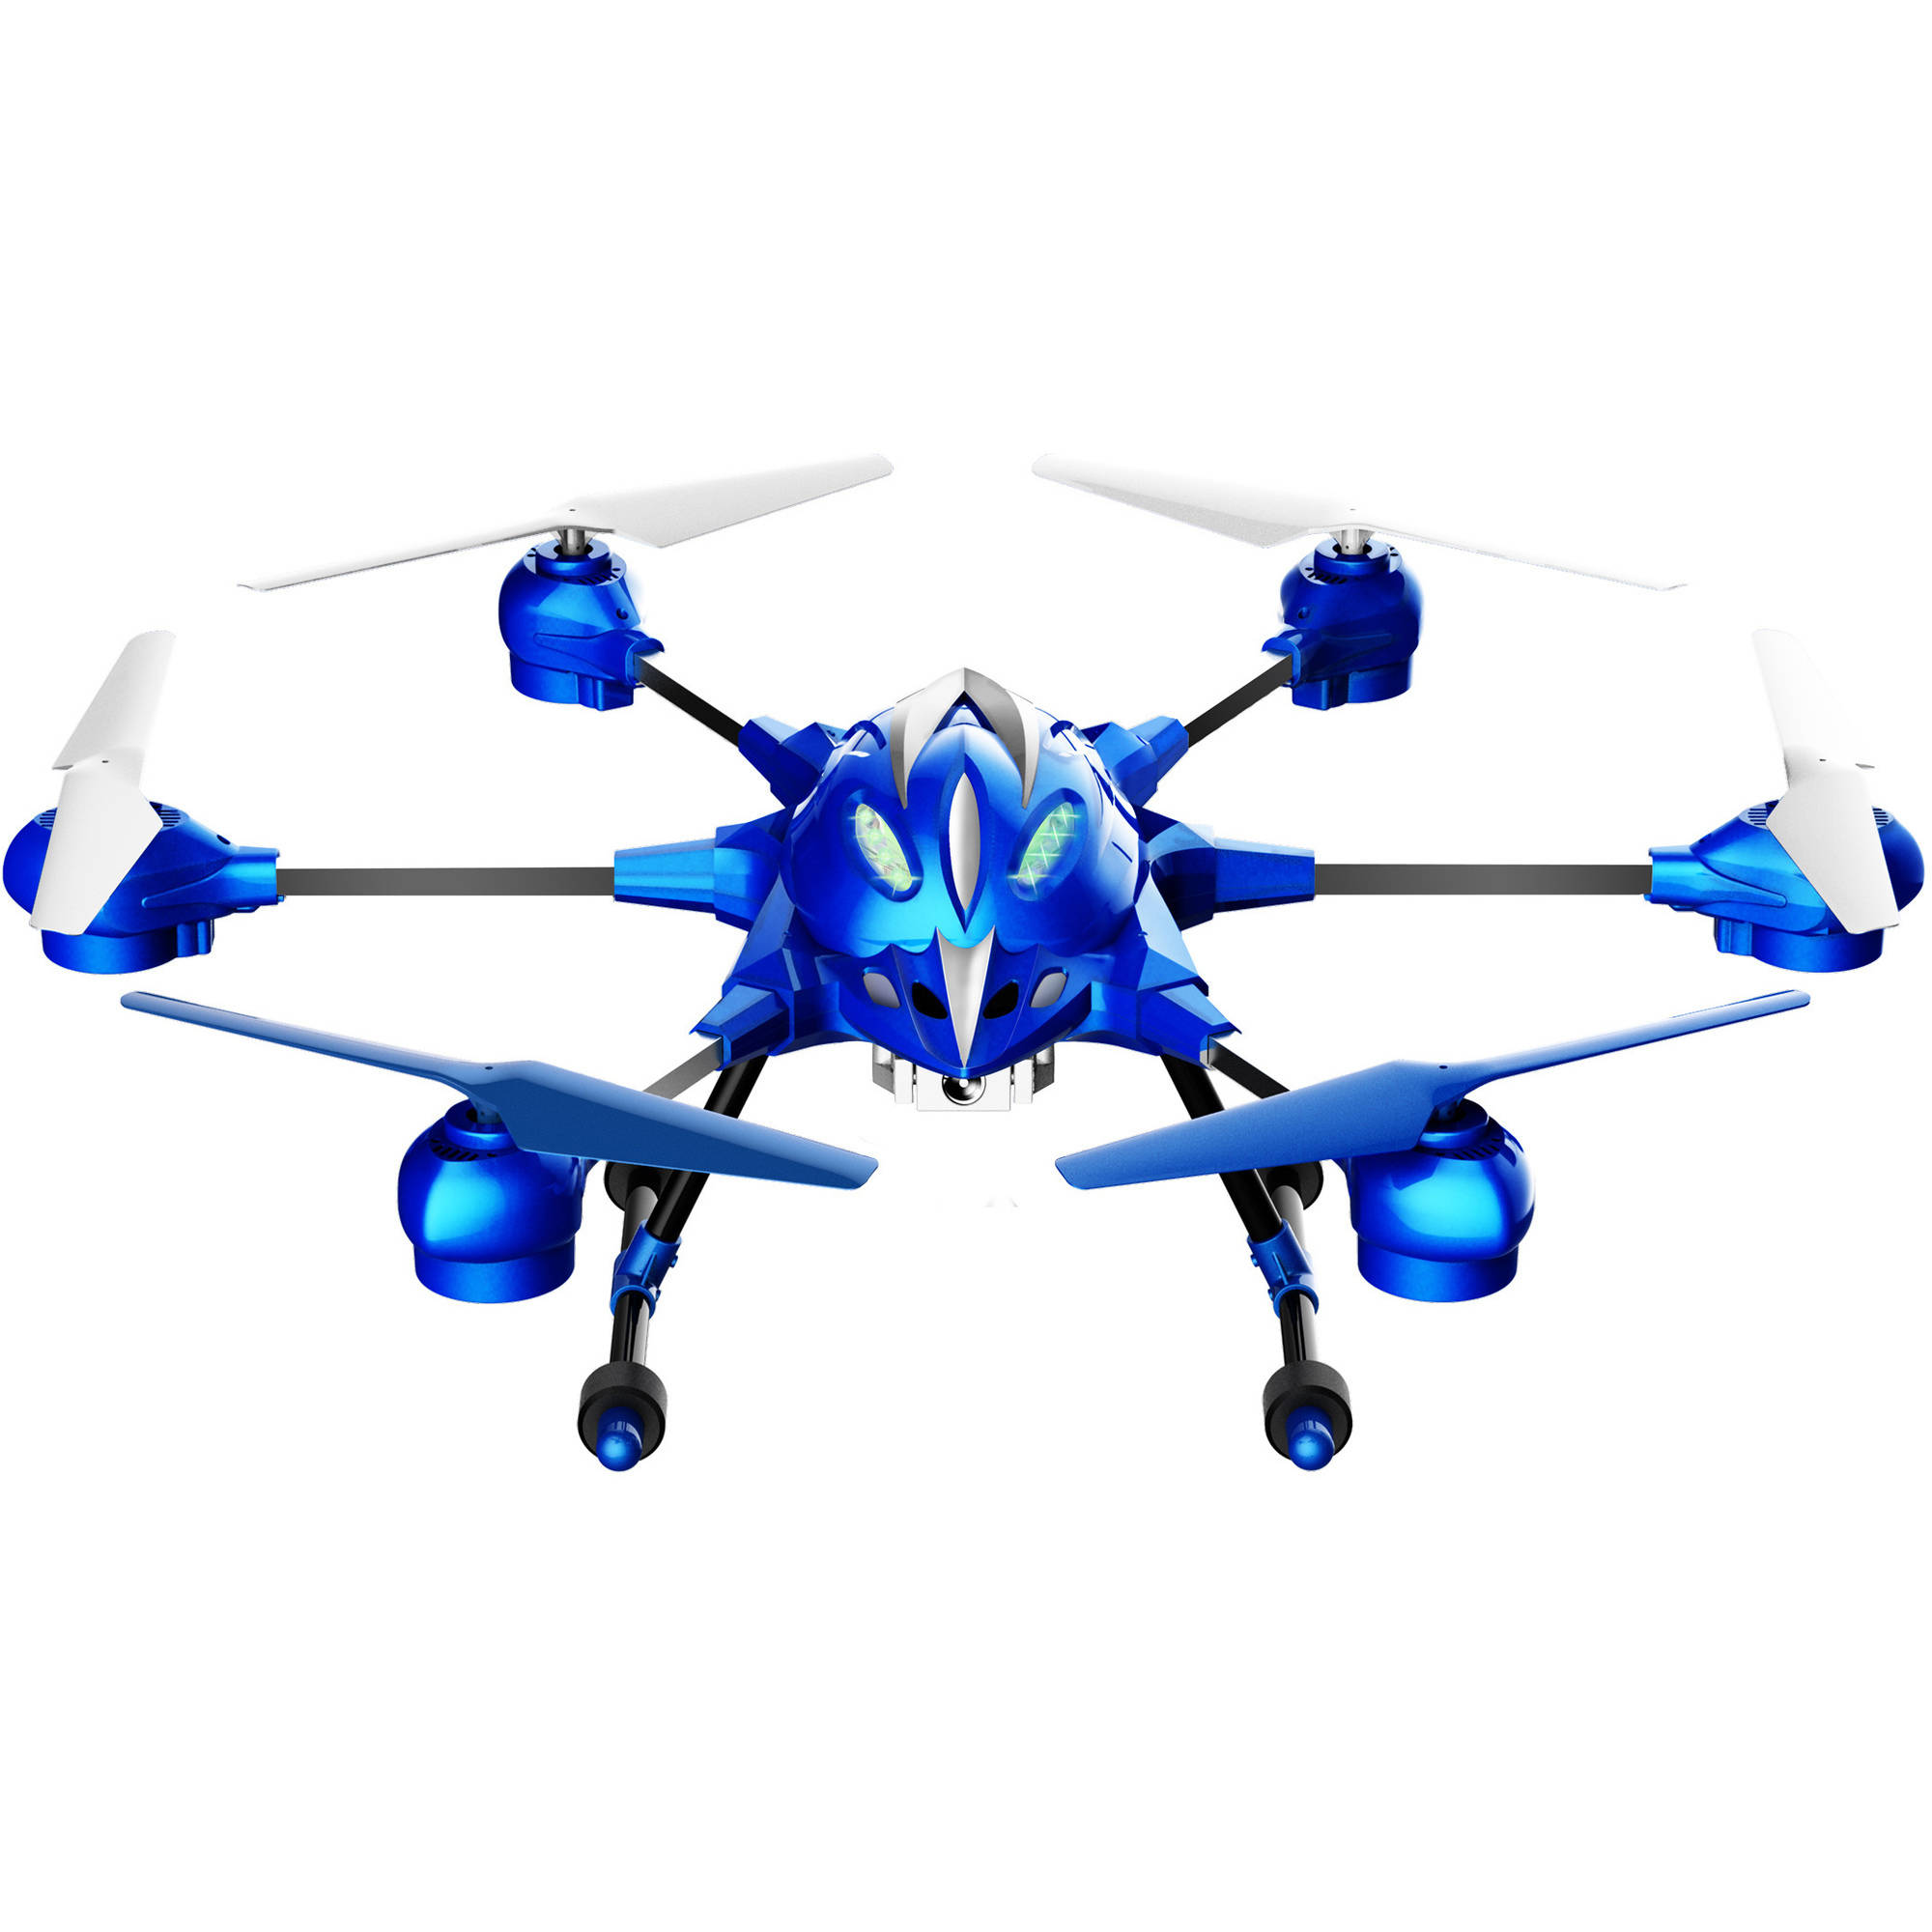 Riviera RC Pathfinder Hexacopter WiFi Drone, Blue by Creative Sourcing International